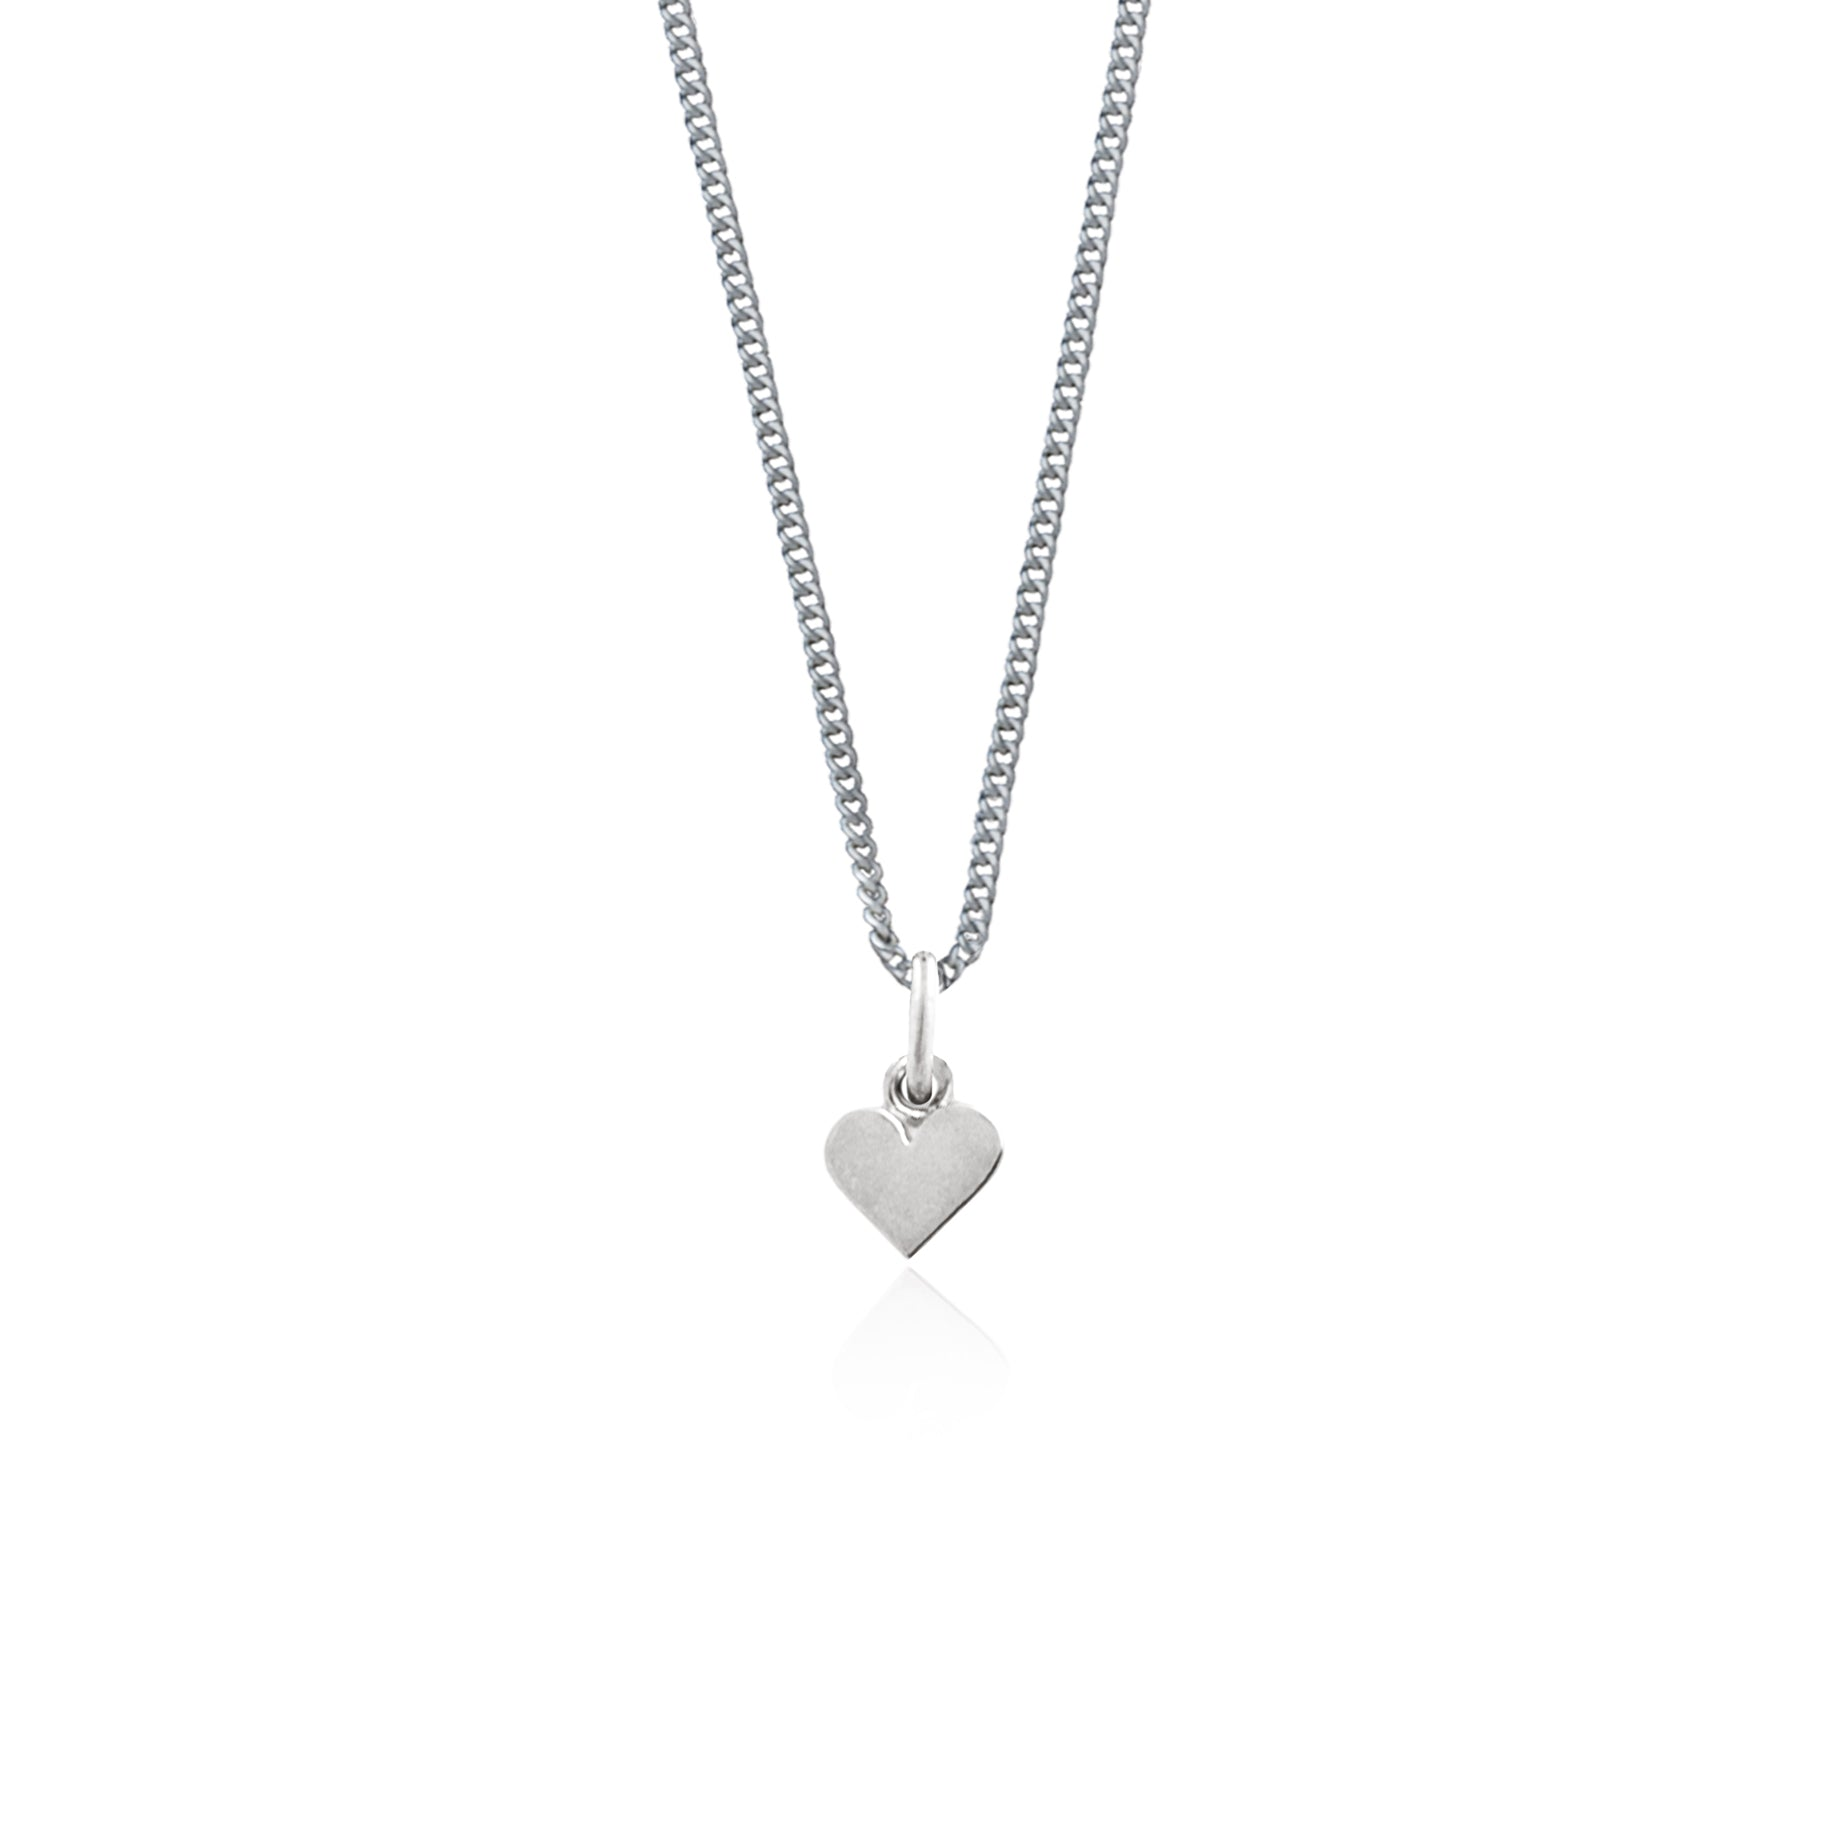 Single Heart of Gold Necklace made from Solid Silver Heart Charm